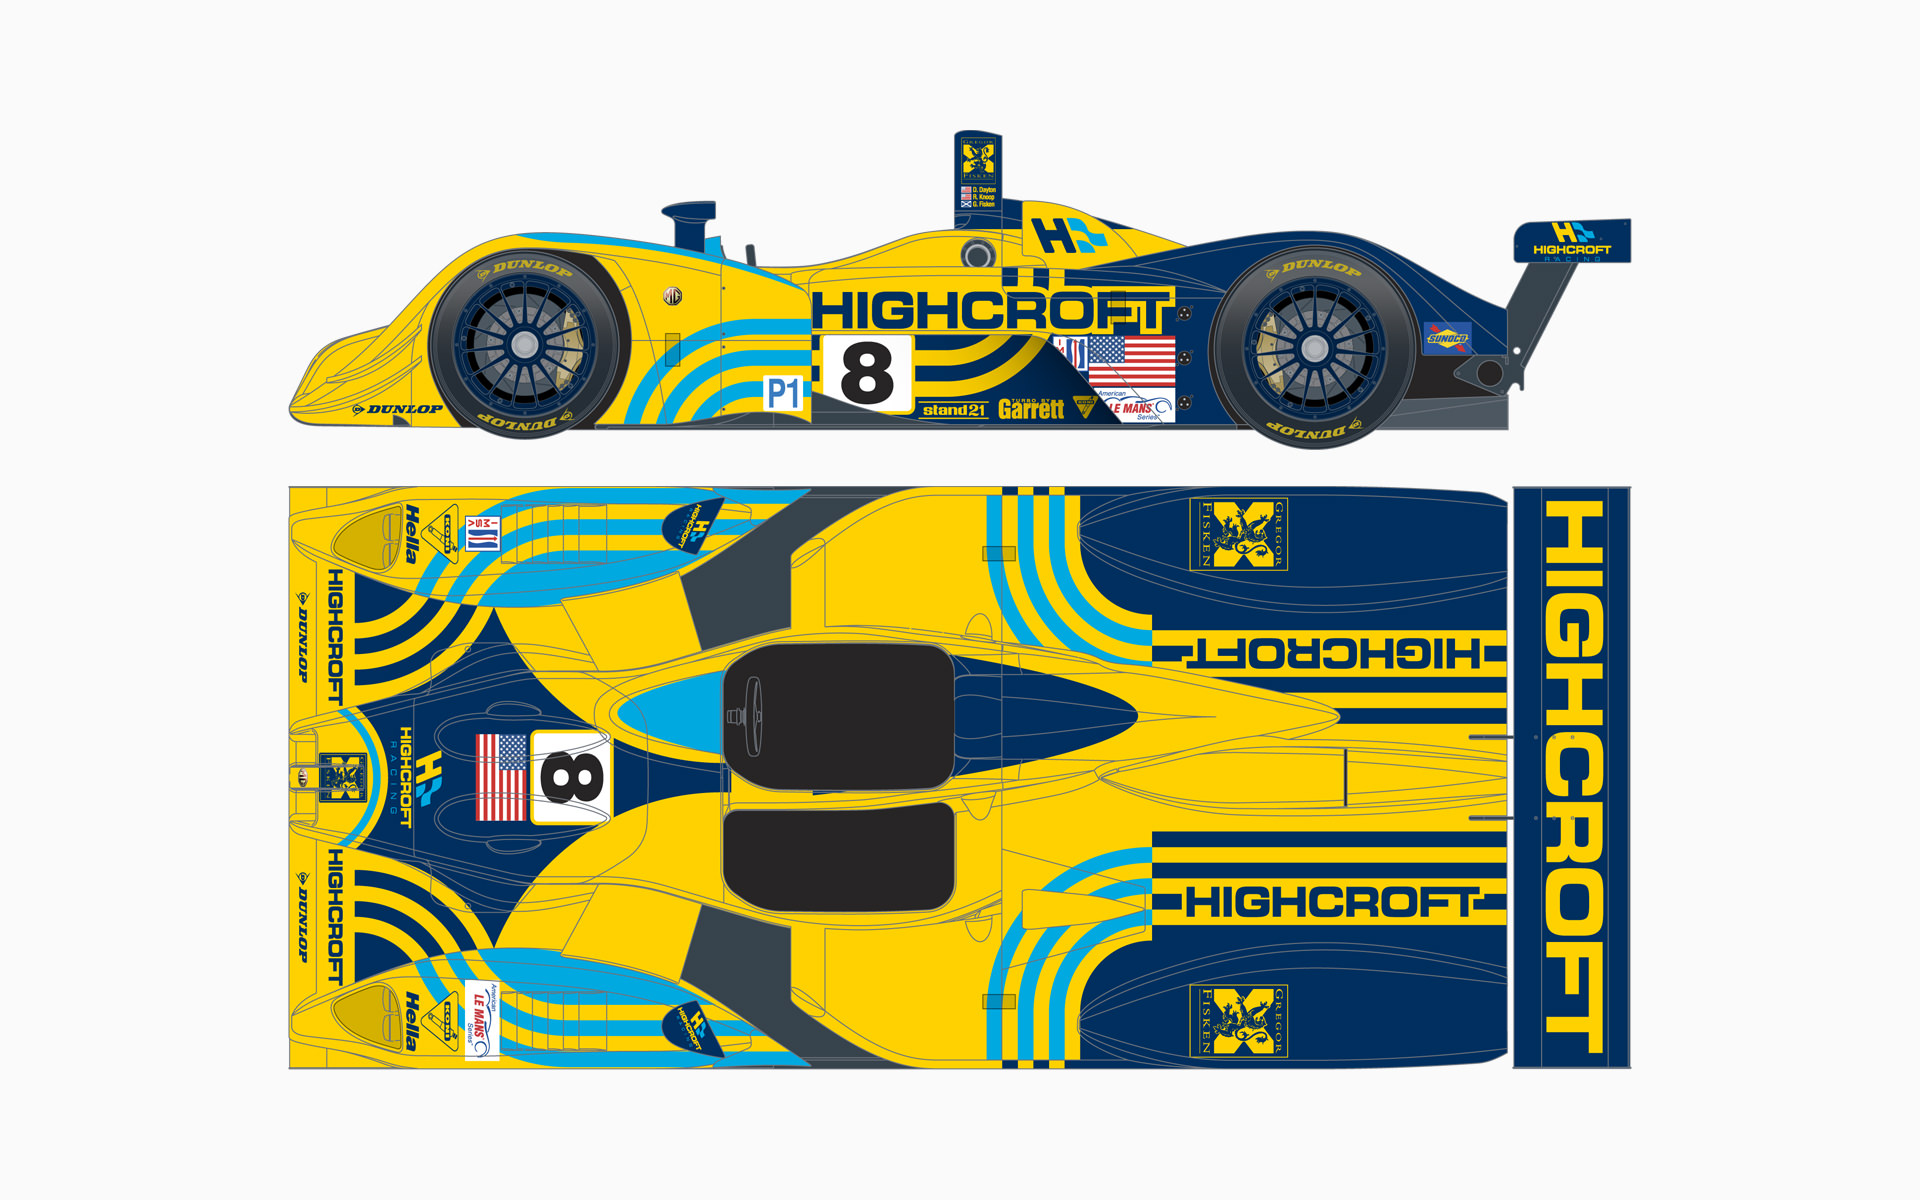 2006 Highcroft Racing Lola EX257 LMP1 Livery Elevations